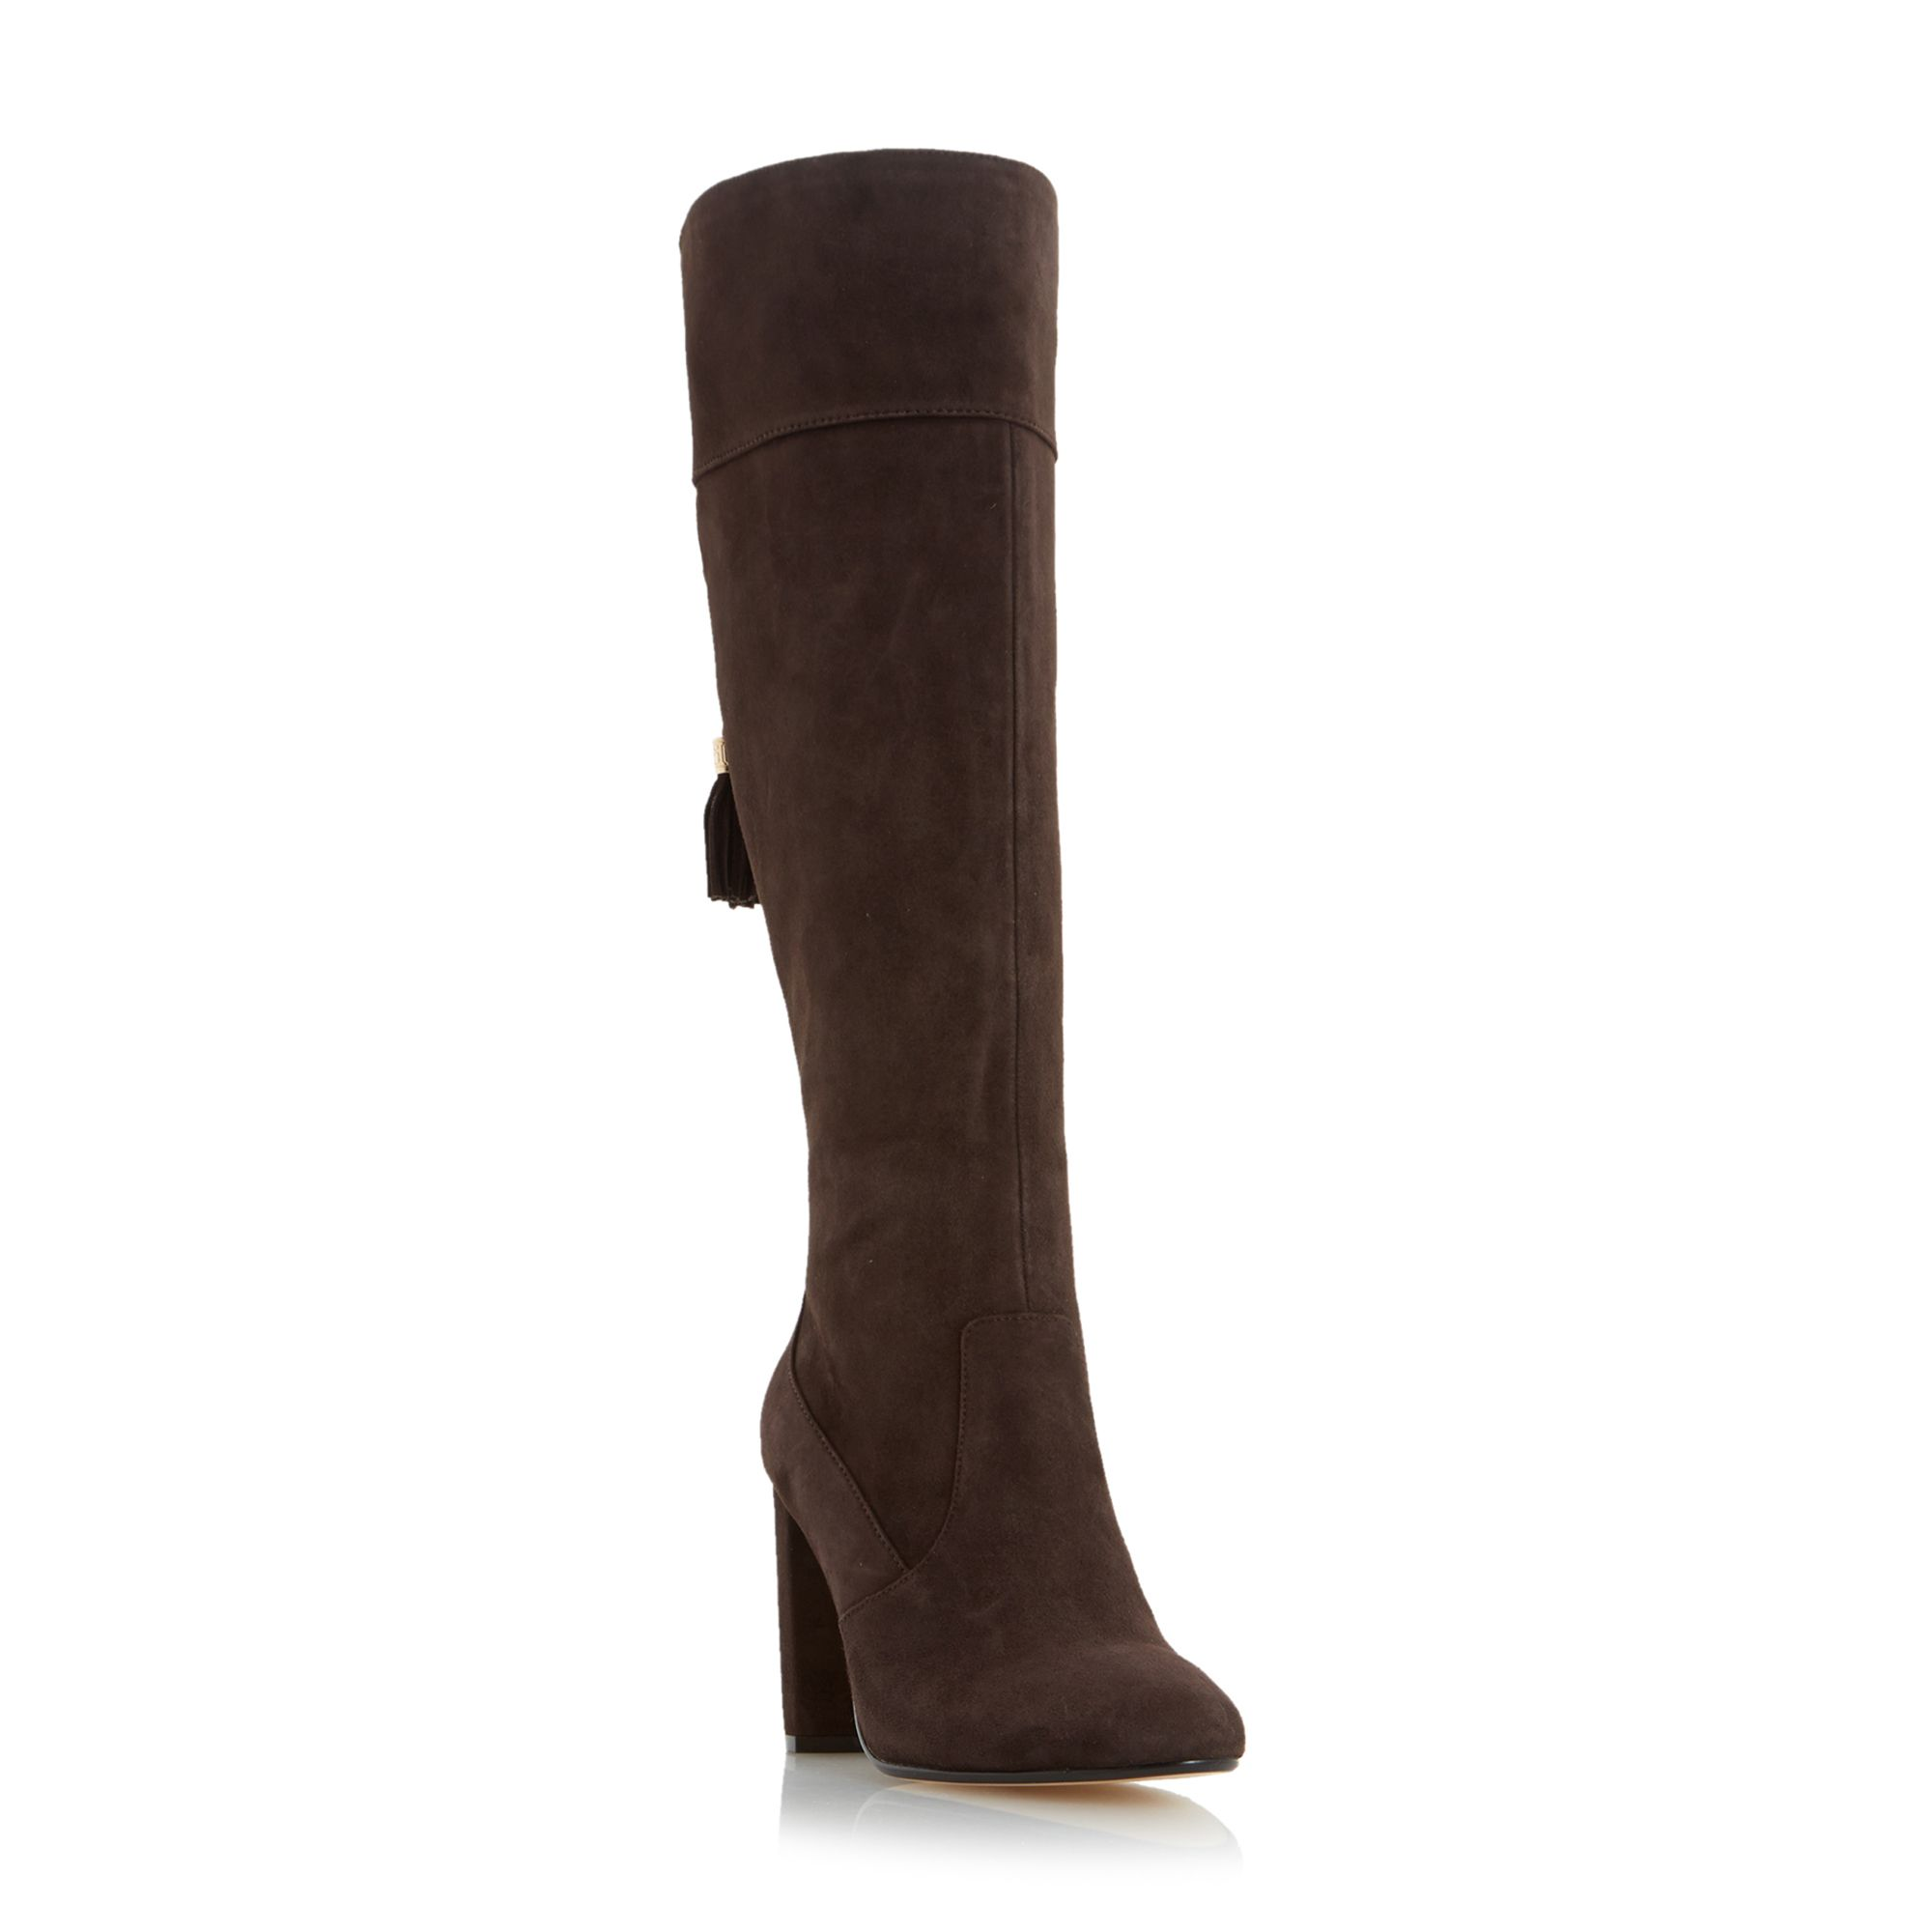 Biba Biba Thulinn knee high boots, Brown